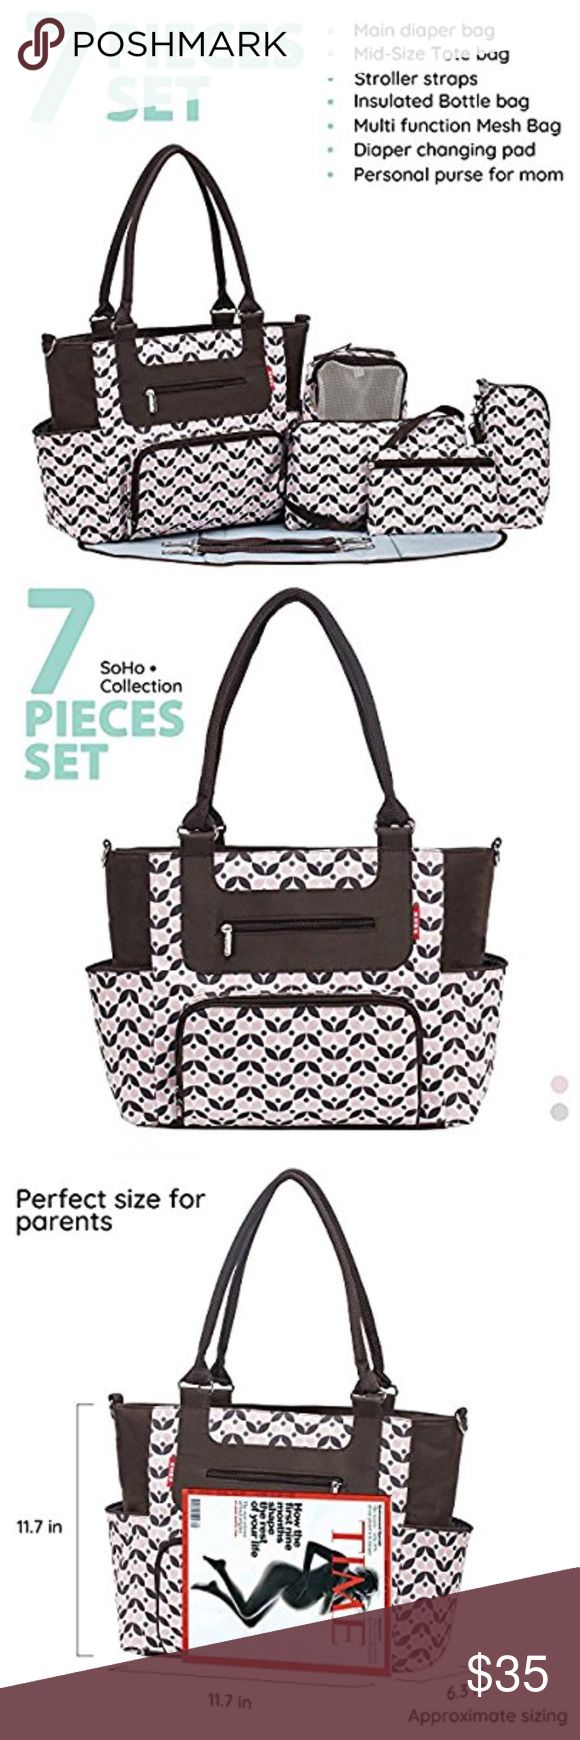 NEW DIAPER BAG FITS TONS OF DIAPERS 7 piece Many pieces and brand new. Tons of pockets everywhere. Easy to keep clean. Not noisy. Stroller straps sold. Super handy bags and a flat surface to change diaper station . Ships fast! :) 5 star seller! Accessories Bags